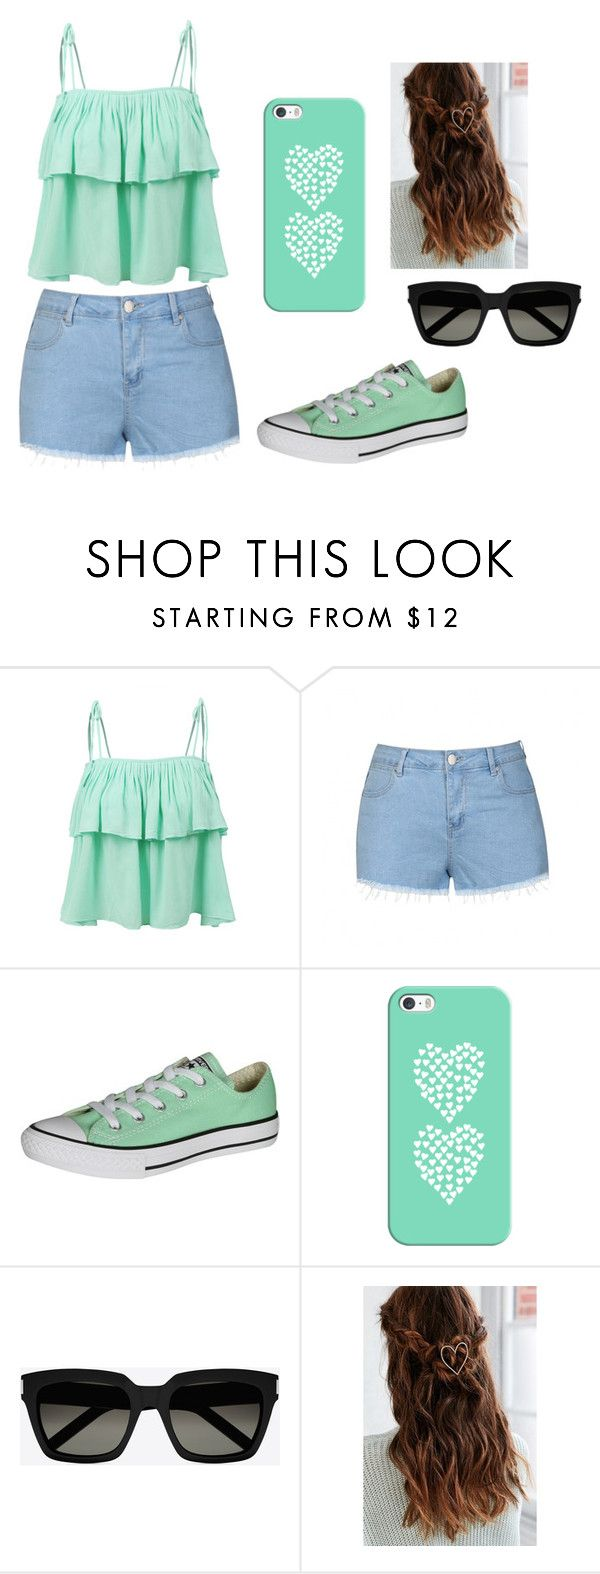 """""""ewfrvg7y89e"""" by katniss-everdeen-578 ❤ liked on Polyvore featuring LE3NO, Ally Fashion, Converse, Casetify, Yves Saint Laurent and Urban Outfitters"""